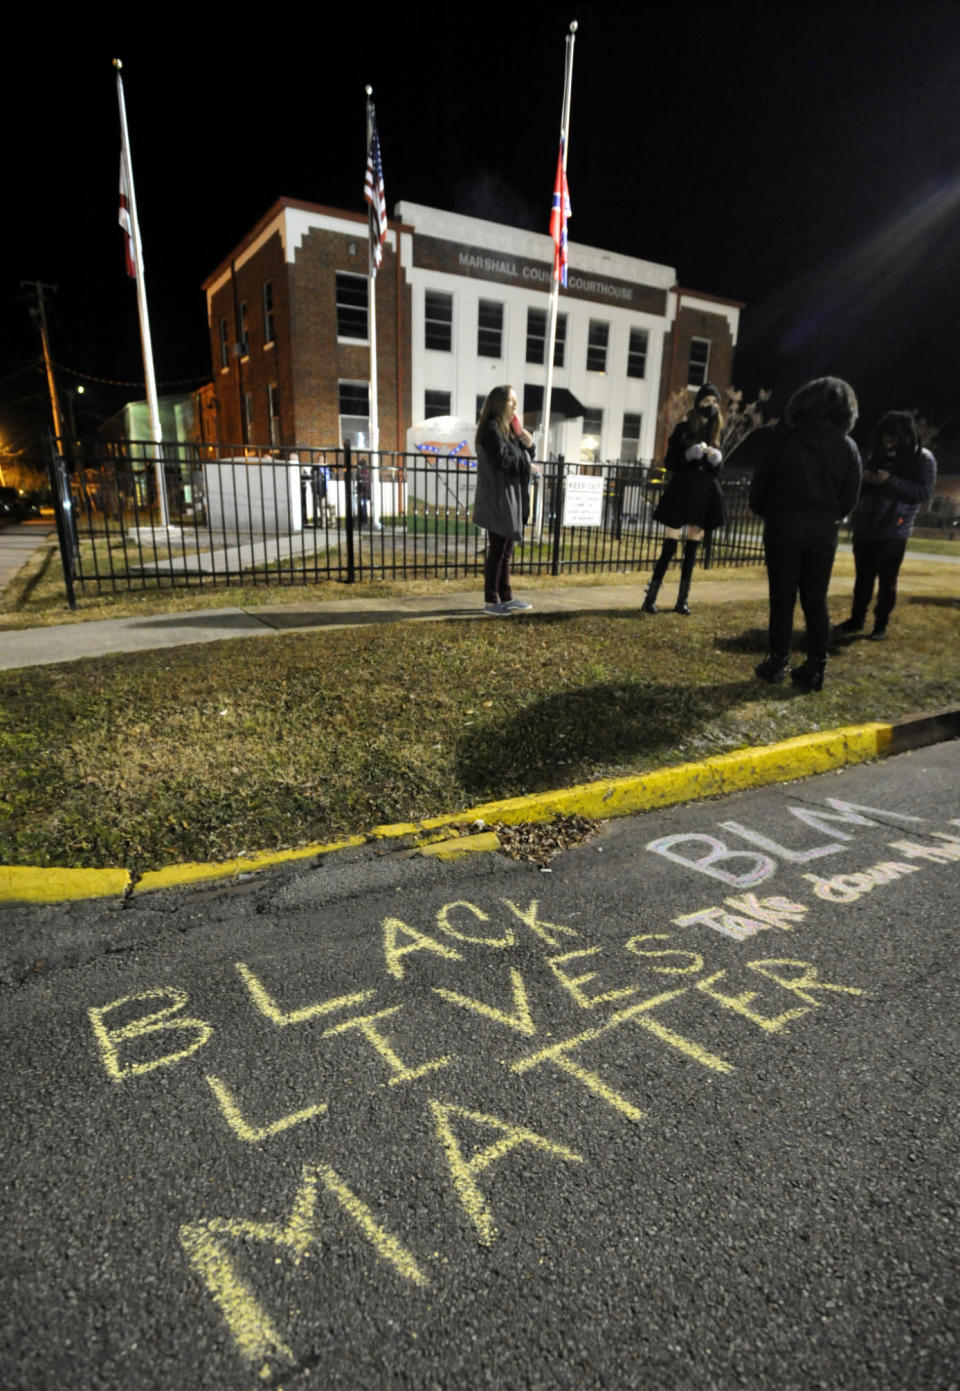 Demonstrators gather outside the Marshall County Courthouse in Albertville, Ala., on Wednesday, Dec. 9, 2020, following a protest against a Confederate monument and flag located on the lawn. Unique Morgan Dunston, a Black woman transformed by leaving the virtually all-white town where she grew up, has been leading the demonstrations since August. (AP Photo/Jay Reeves)